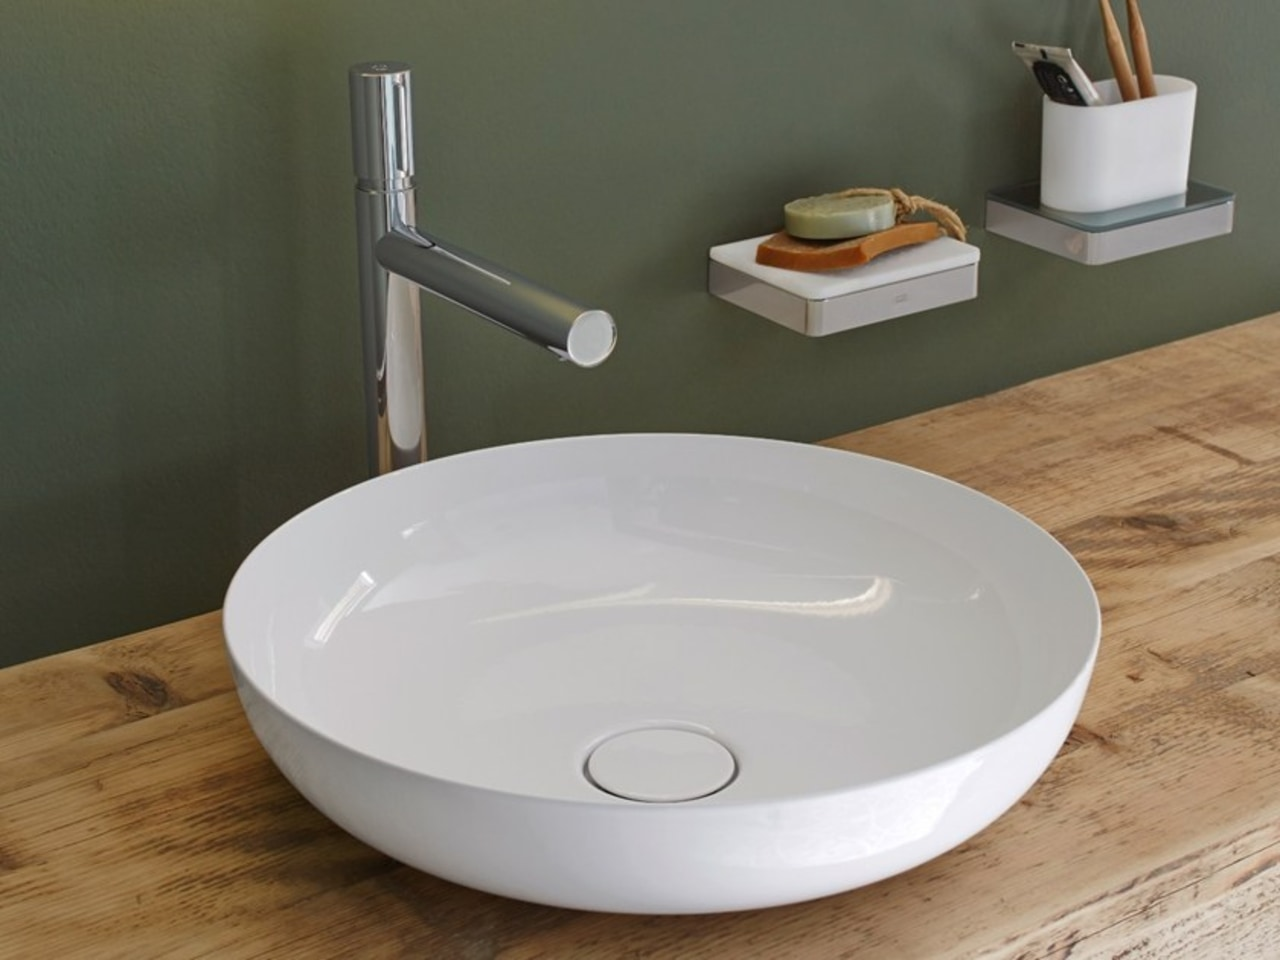 Maximise space and function in your bathroom, while bathroom, bathroom accessory, bathroom sink, ceramic, drain, material property, plumbing fixture, room, sink, tap, gray